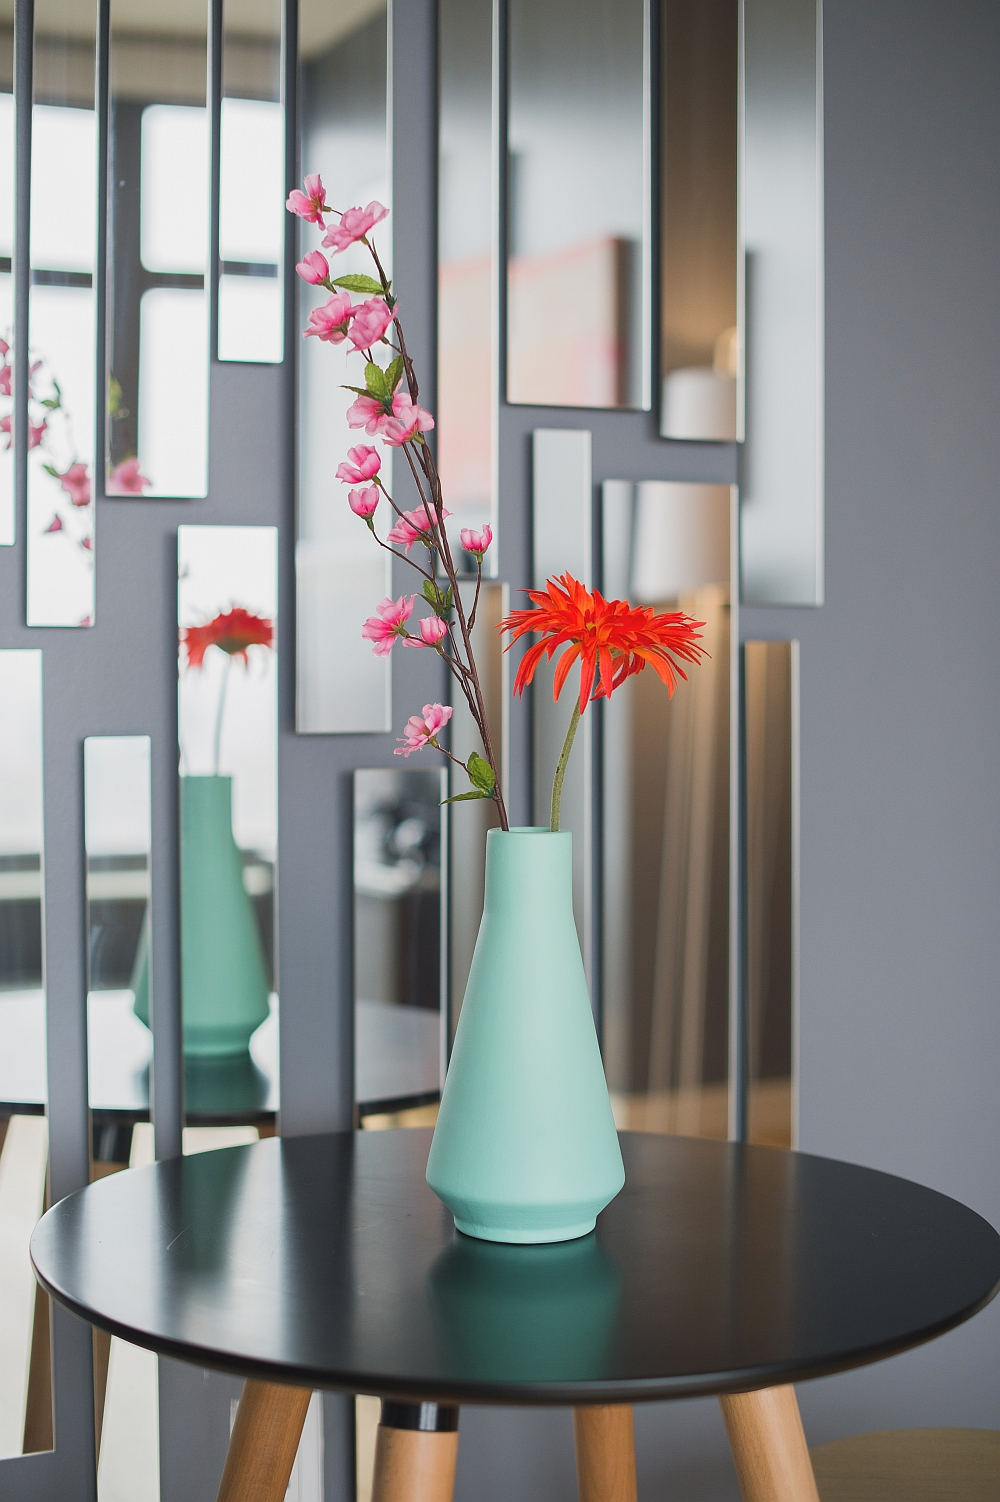 Smart use of mirrors to decorate the walls